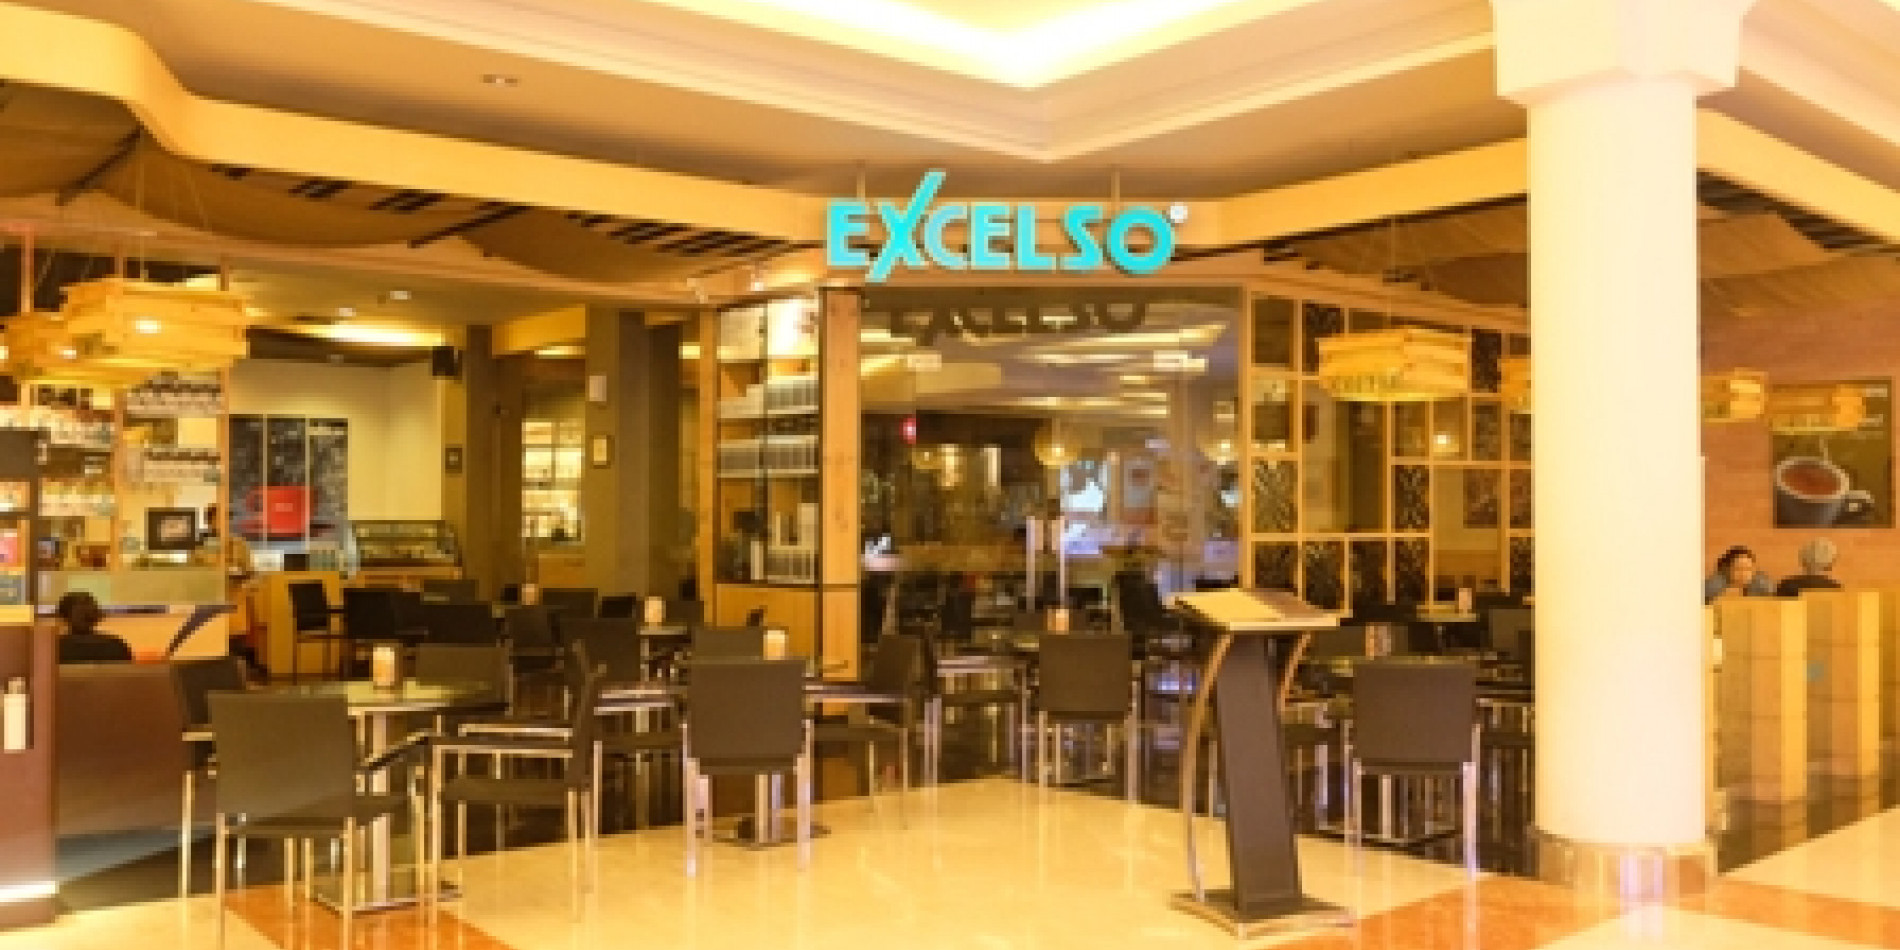 Excelso Coffee